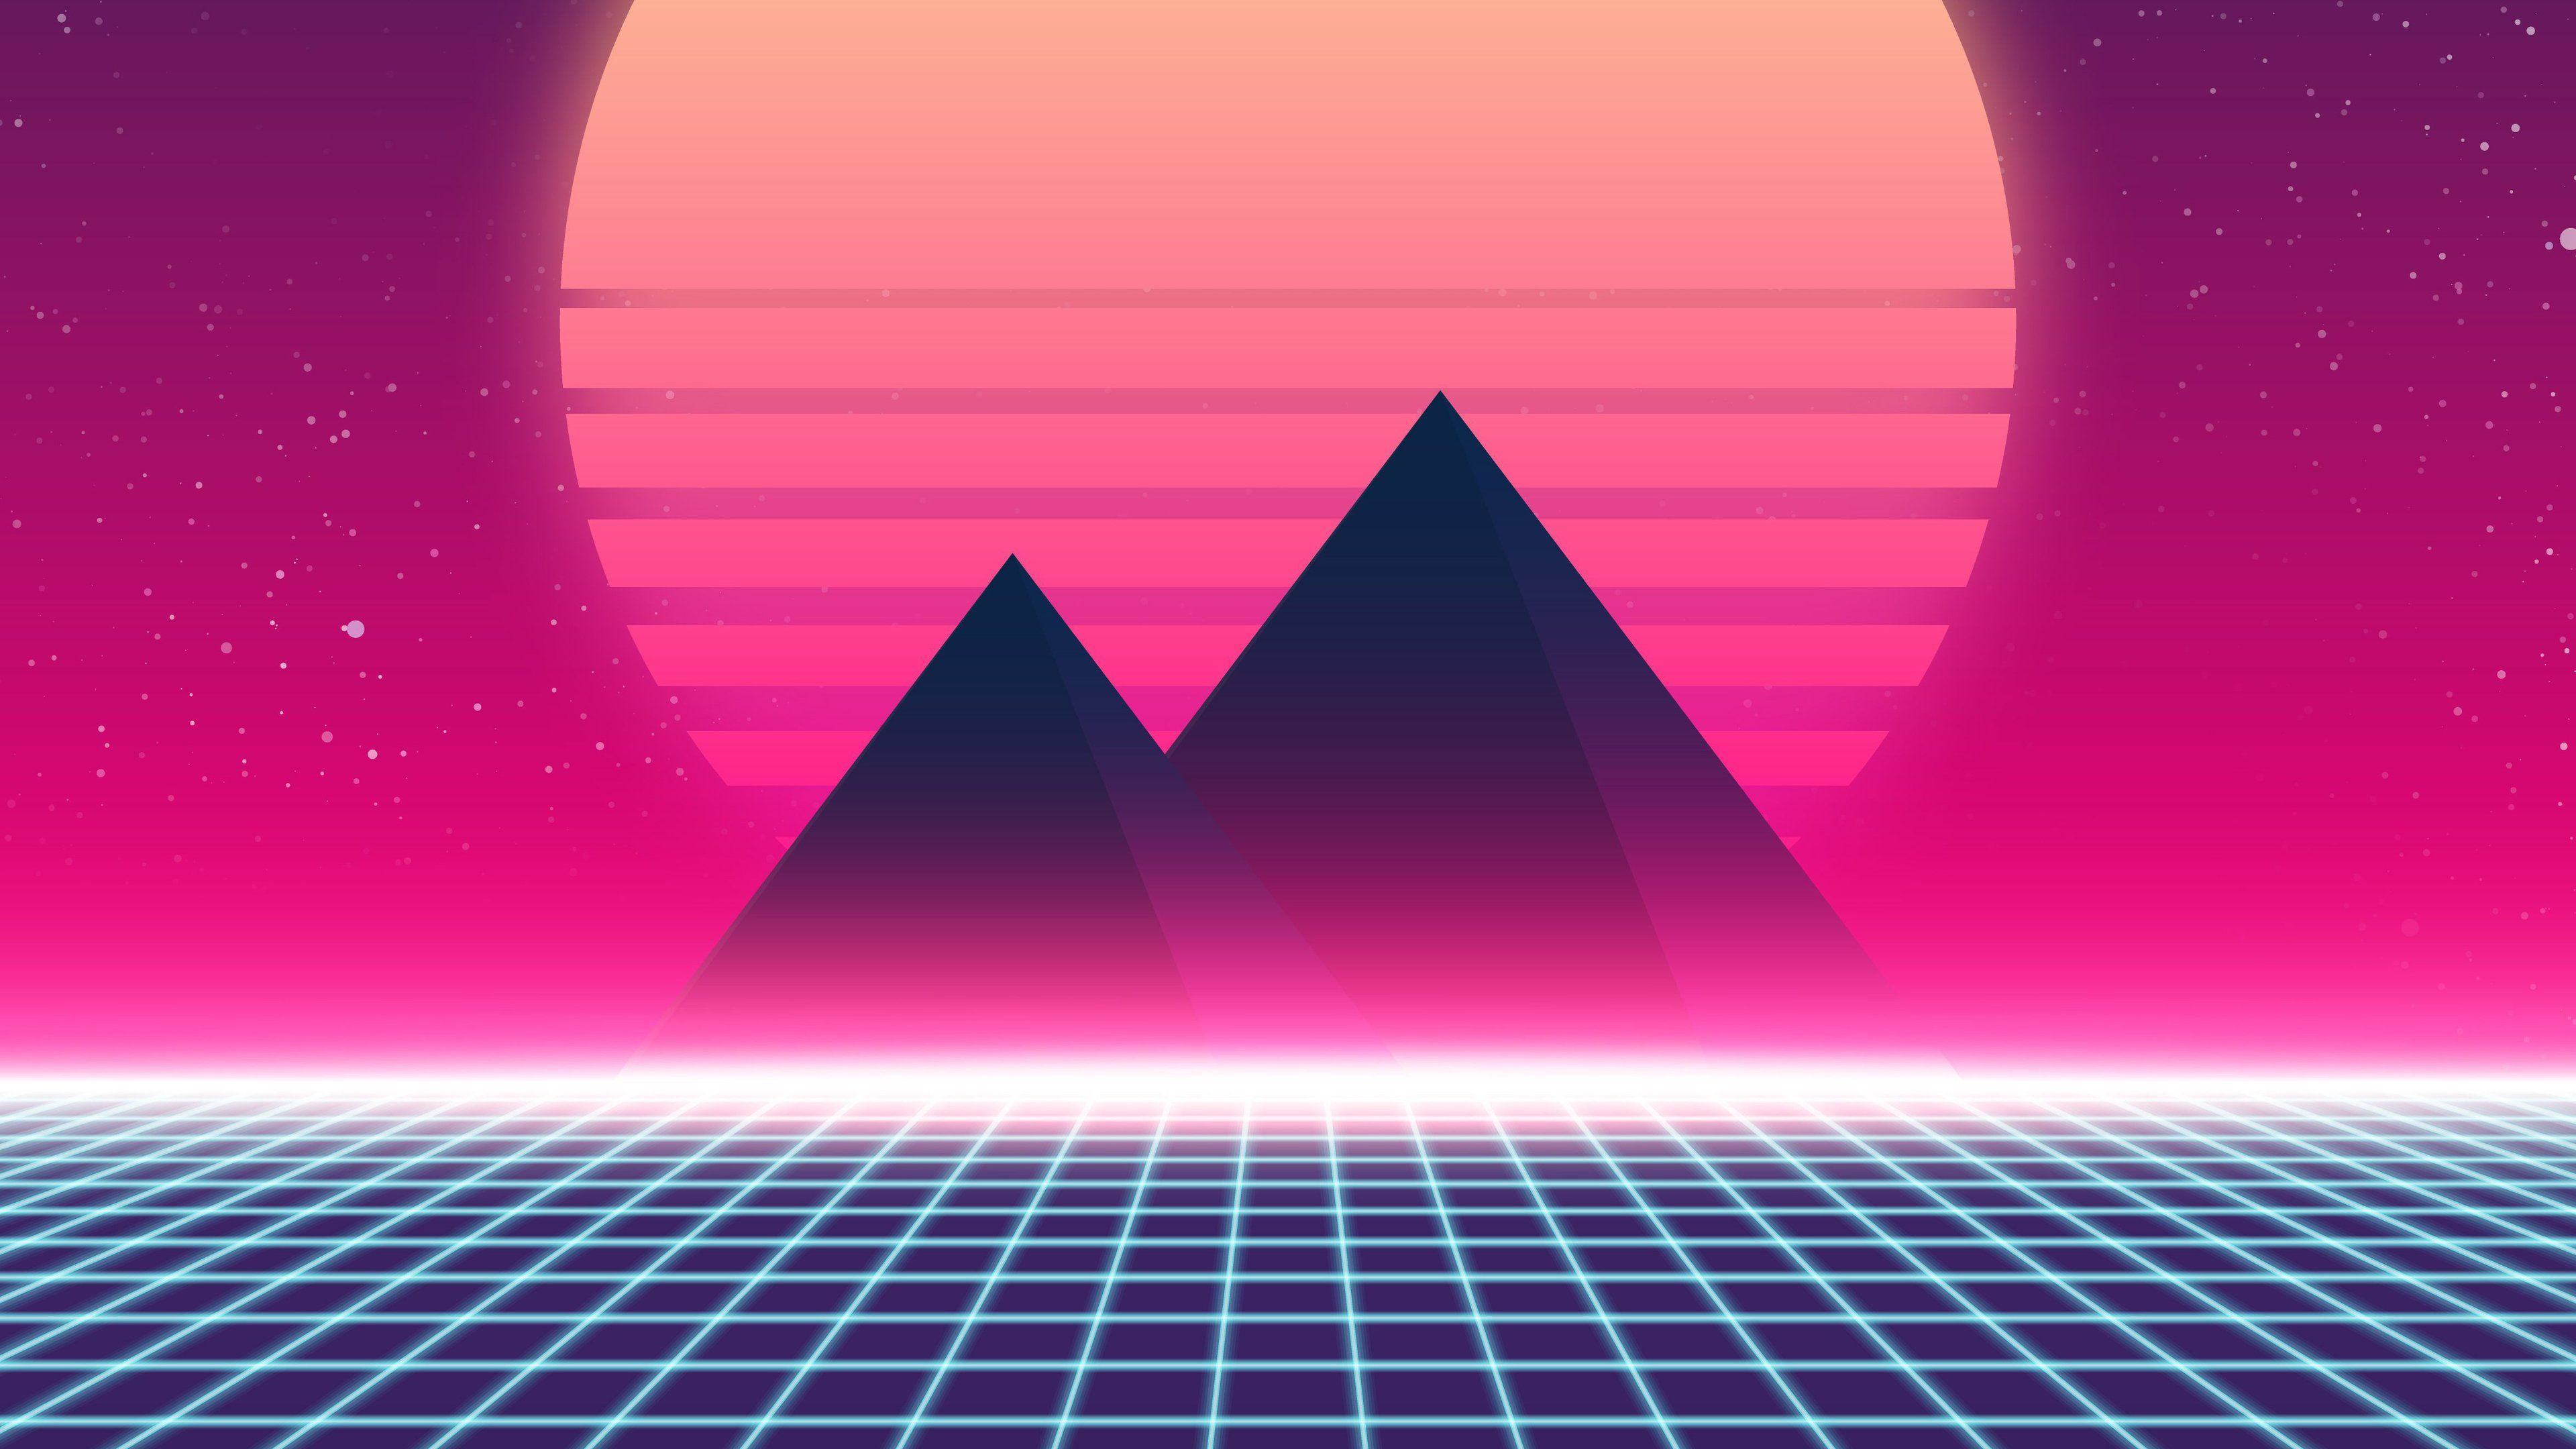 Retrowave 90s 4k Synthwave Wallpapers Retrowave Wallpapers Hd Wallpapers Abstract Wallpapers 5k Wallpapers 4 In 2020 Abstract Wallpaper Abstract Digital Wallpaper